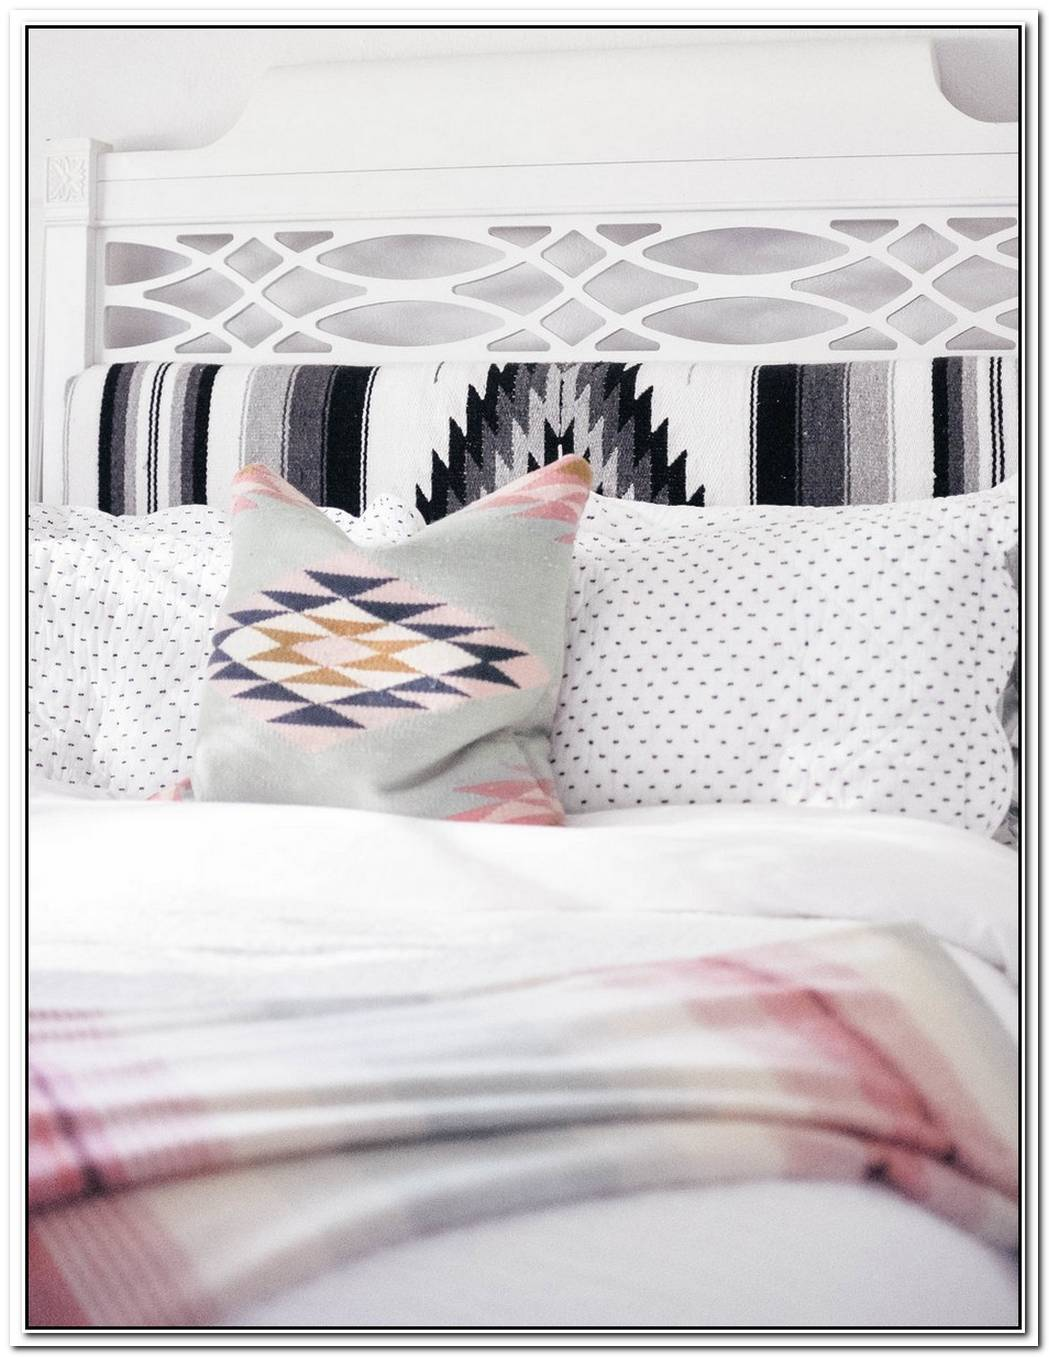 Fall Head Over Heels For These 16 Headboards